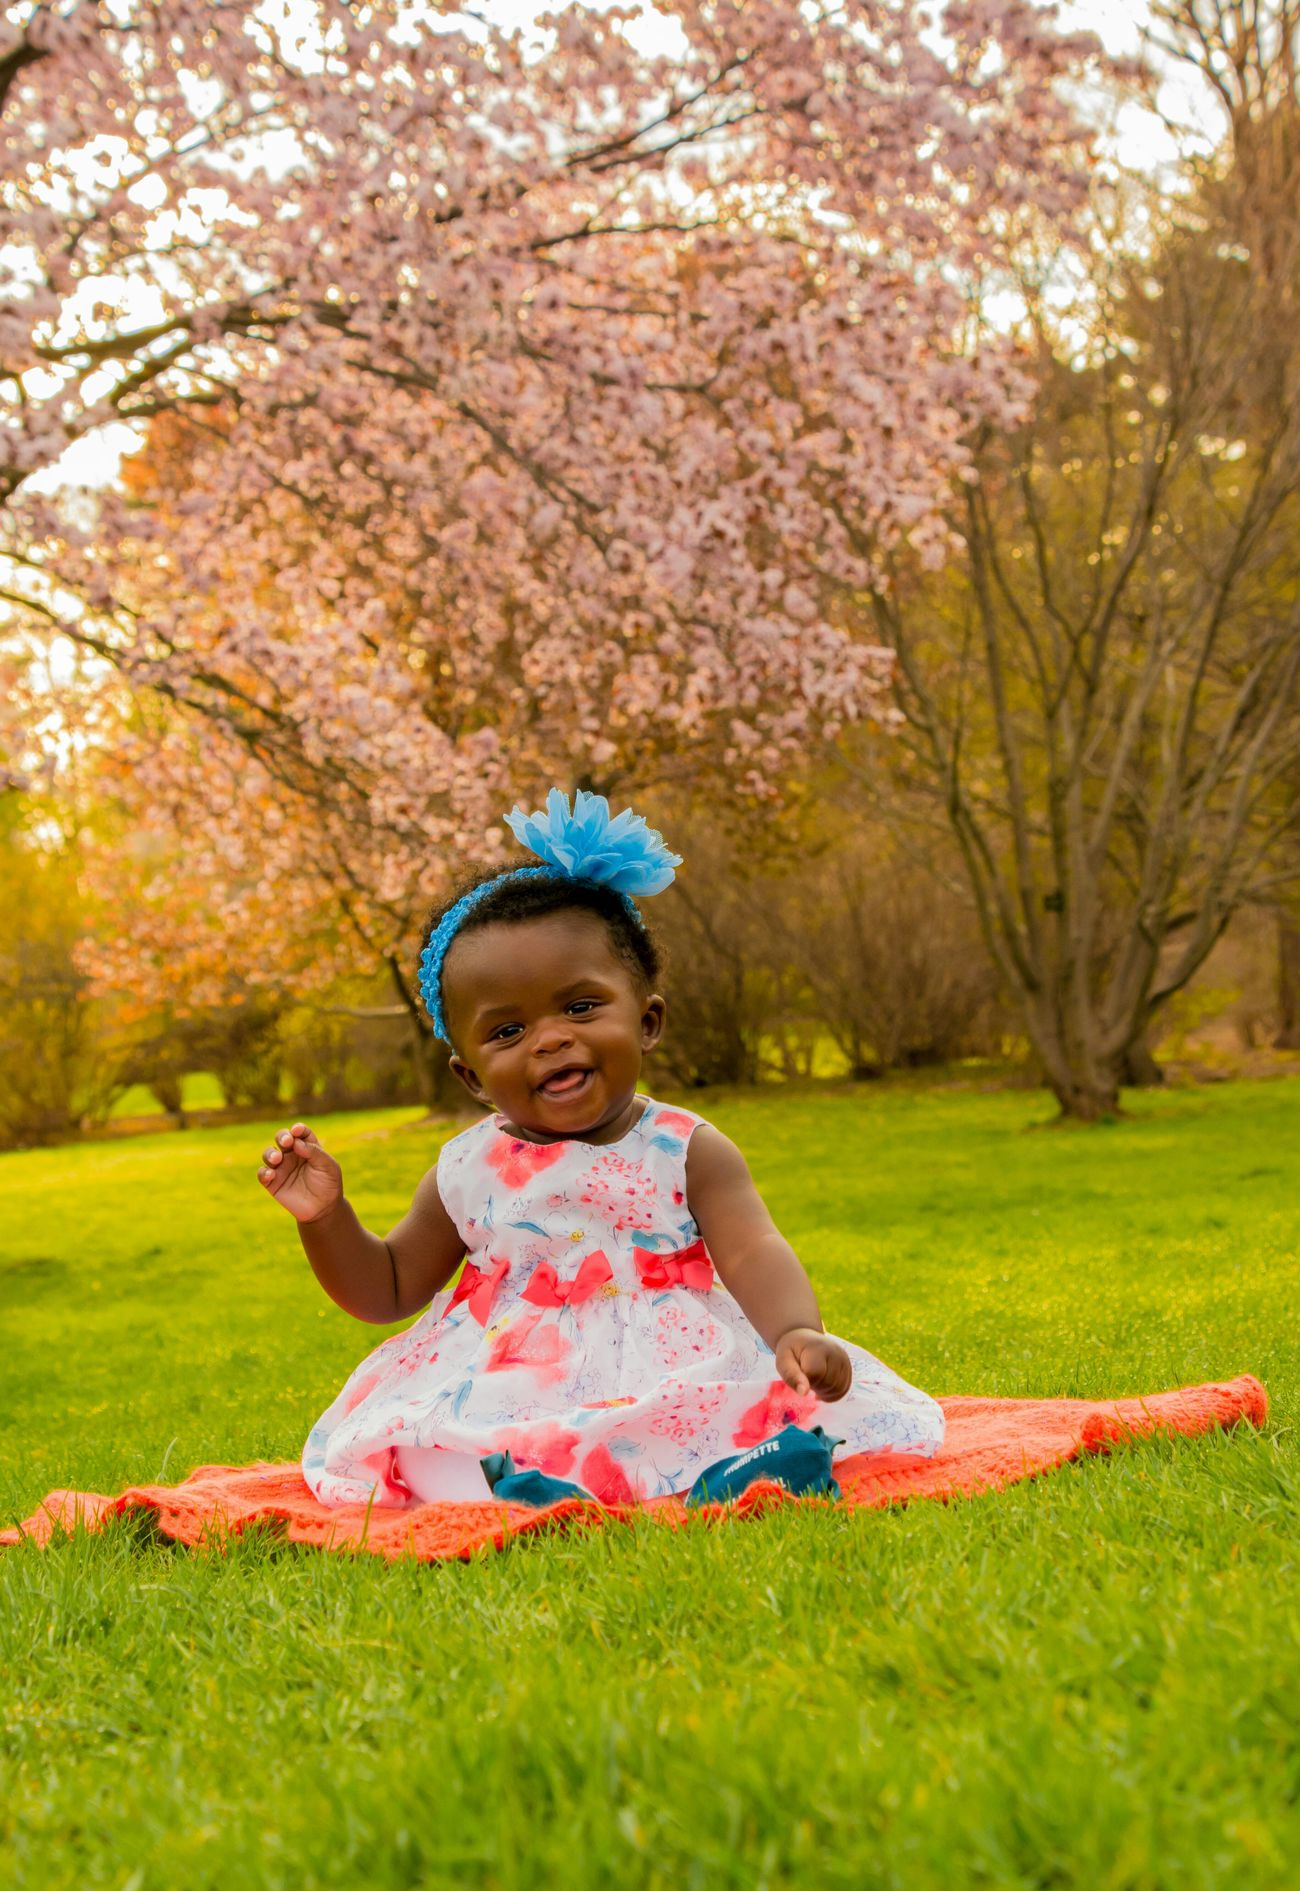 My baby girl's Happy 6 Months :)) photoshoot at the Arnold Arboretum We had a Eye4photography  day! EyeEm Best Shots